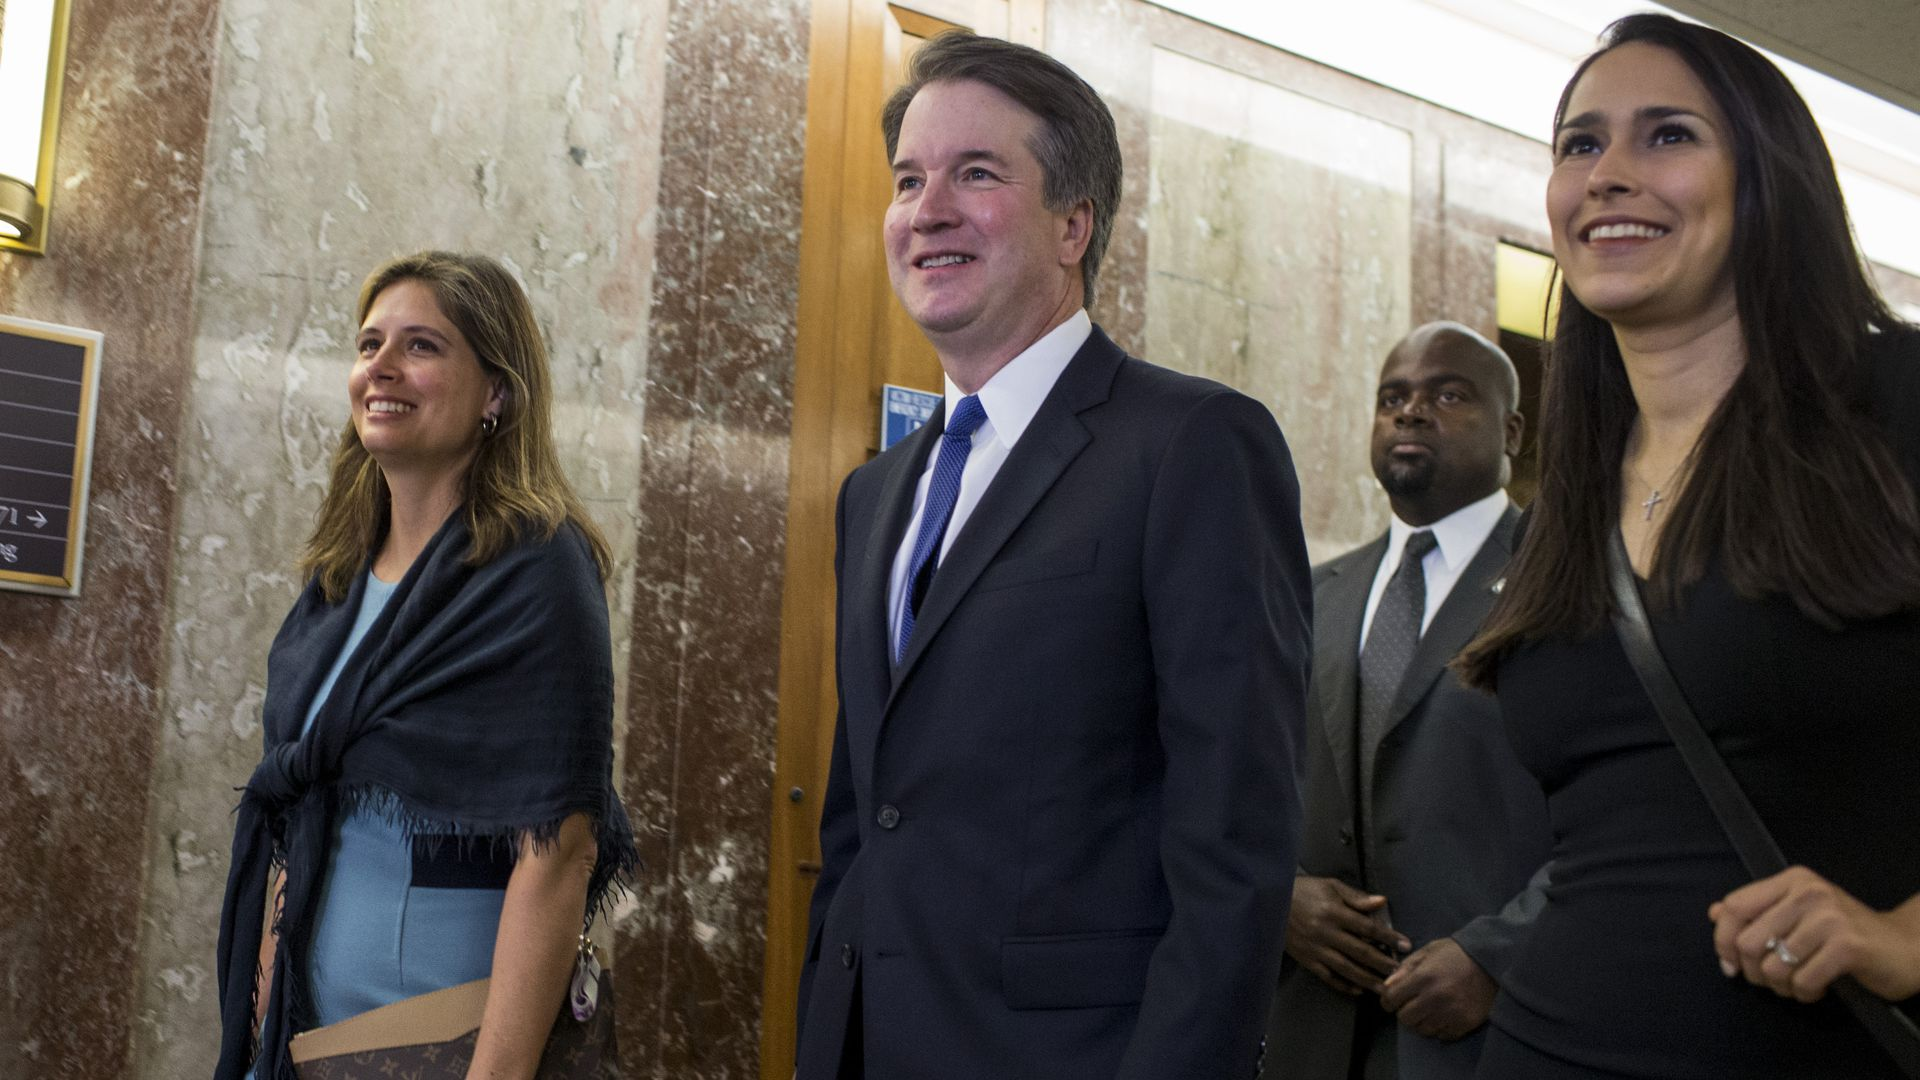 Supreme Court Nominee Brett Kavanaugh on Capitol Hill. Photo: Zach Gibson/Getty Images